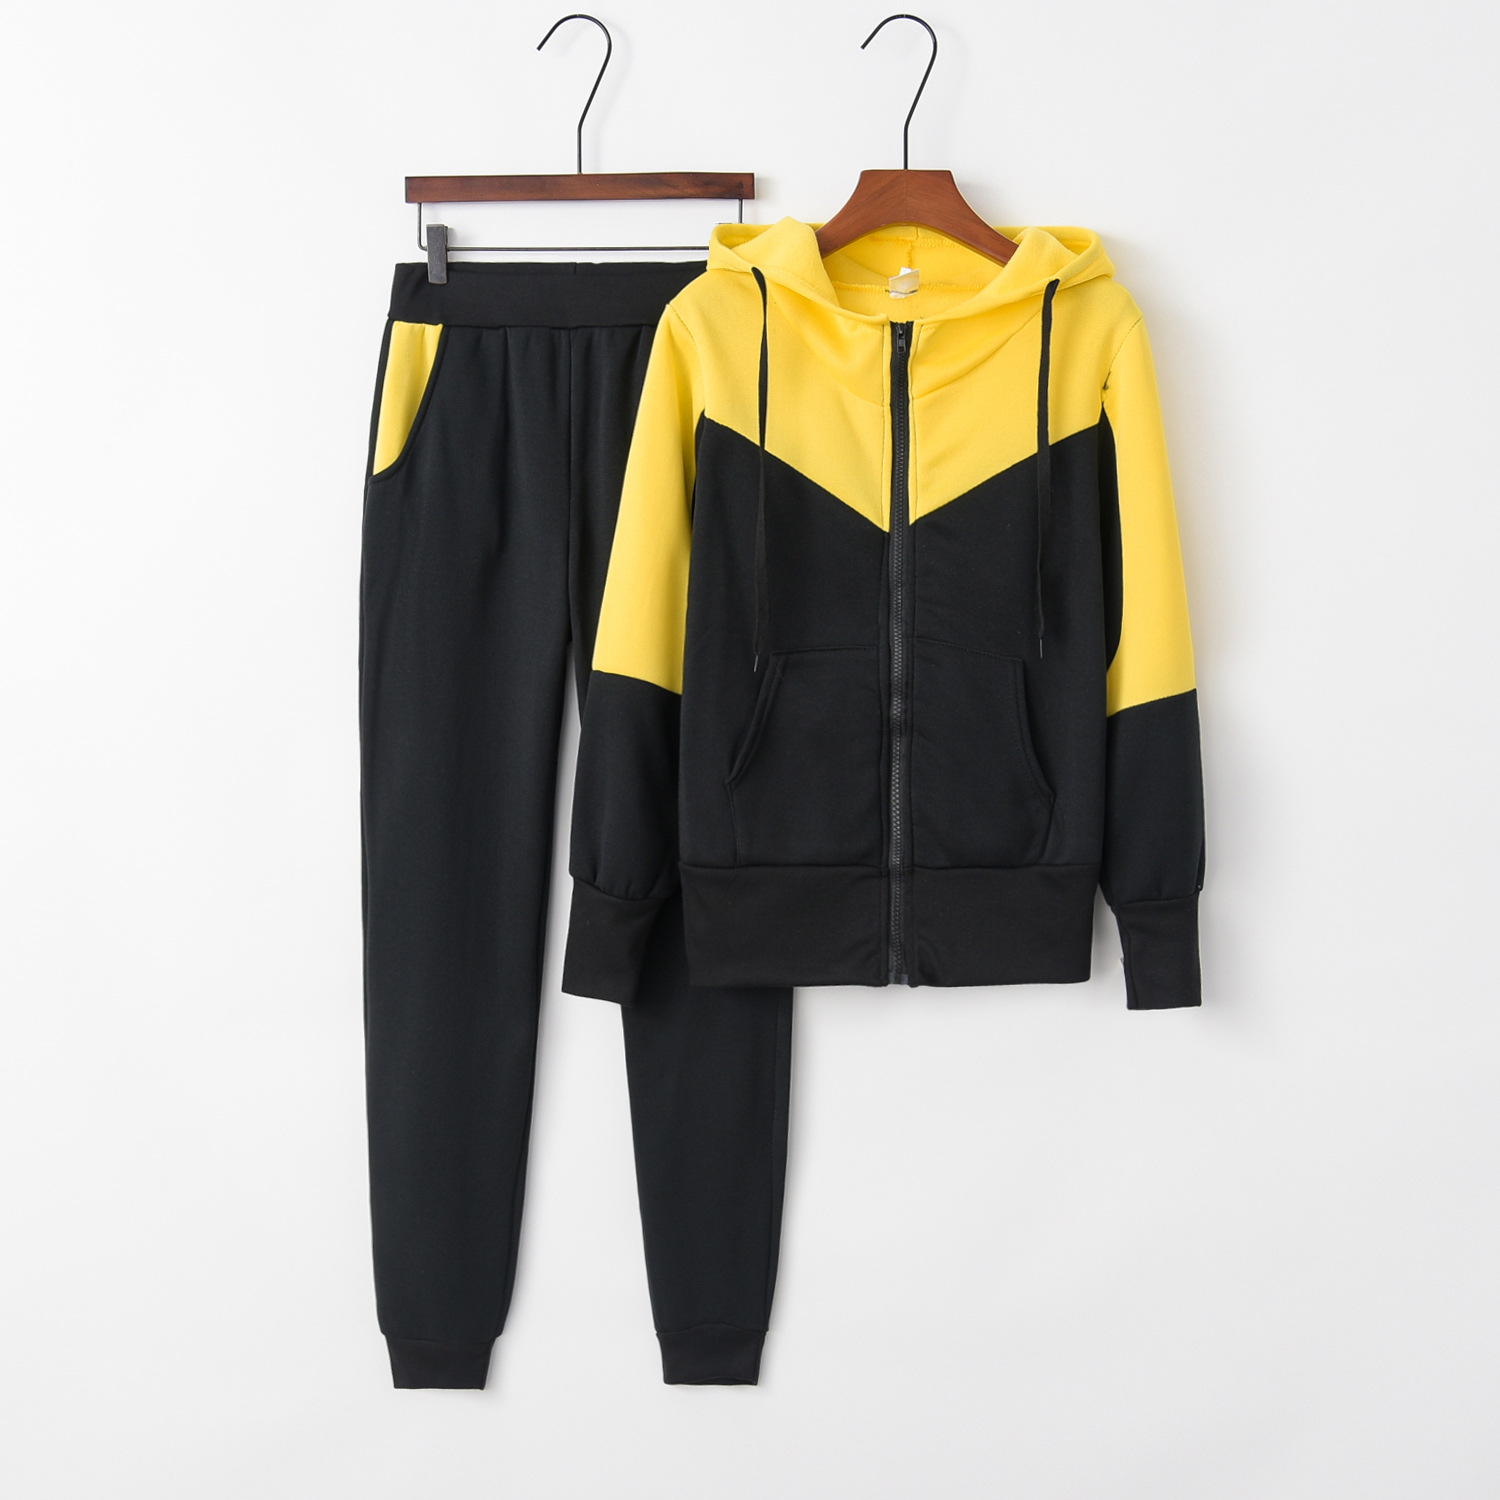 Patchwork Yellow 2020 New Design Fashion Hot Sale Suit Set Women Tracksuit Two-piece Style Outfit Sweatshirt Sport Wear